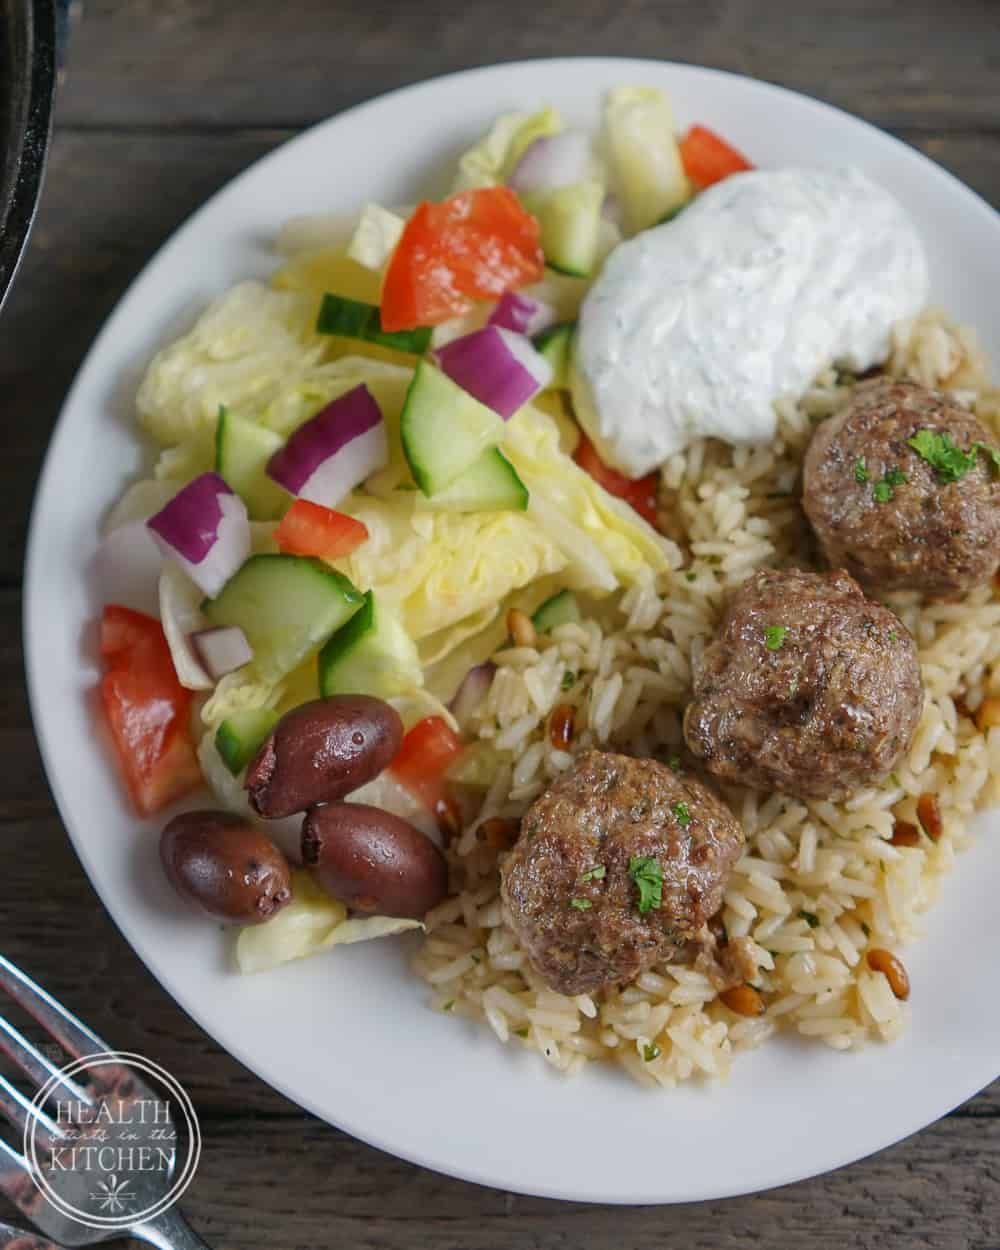 Low-Carb Tzatziki Sauce served with Super Gyro Lamb Meatballs, Rice Pilaf w/Pine Nuts & Parsley and a Greek Salad